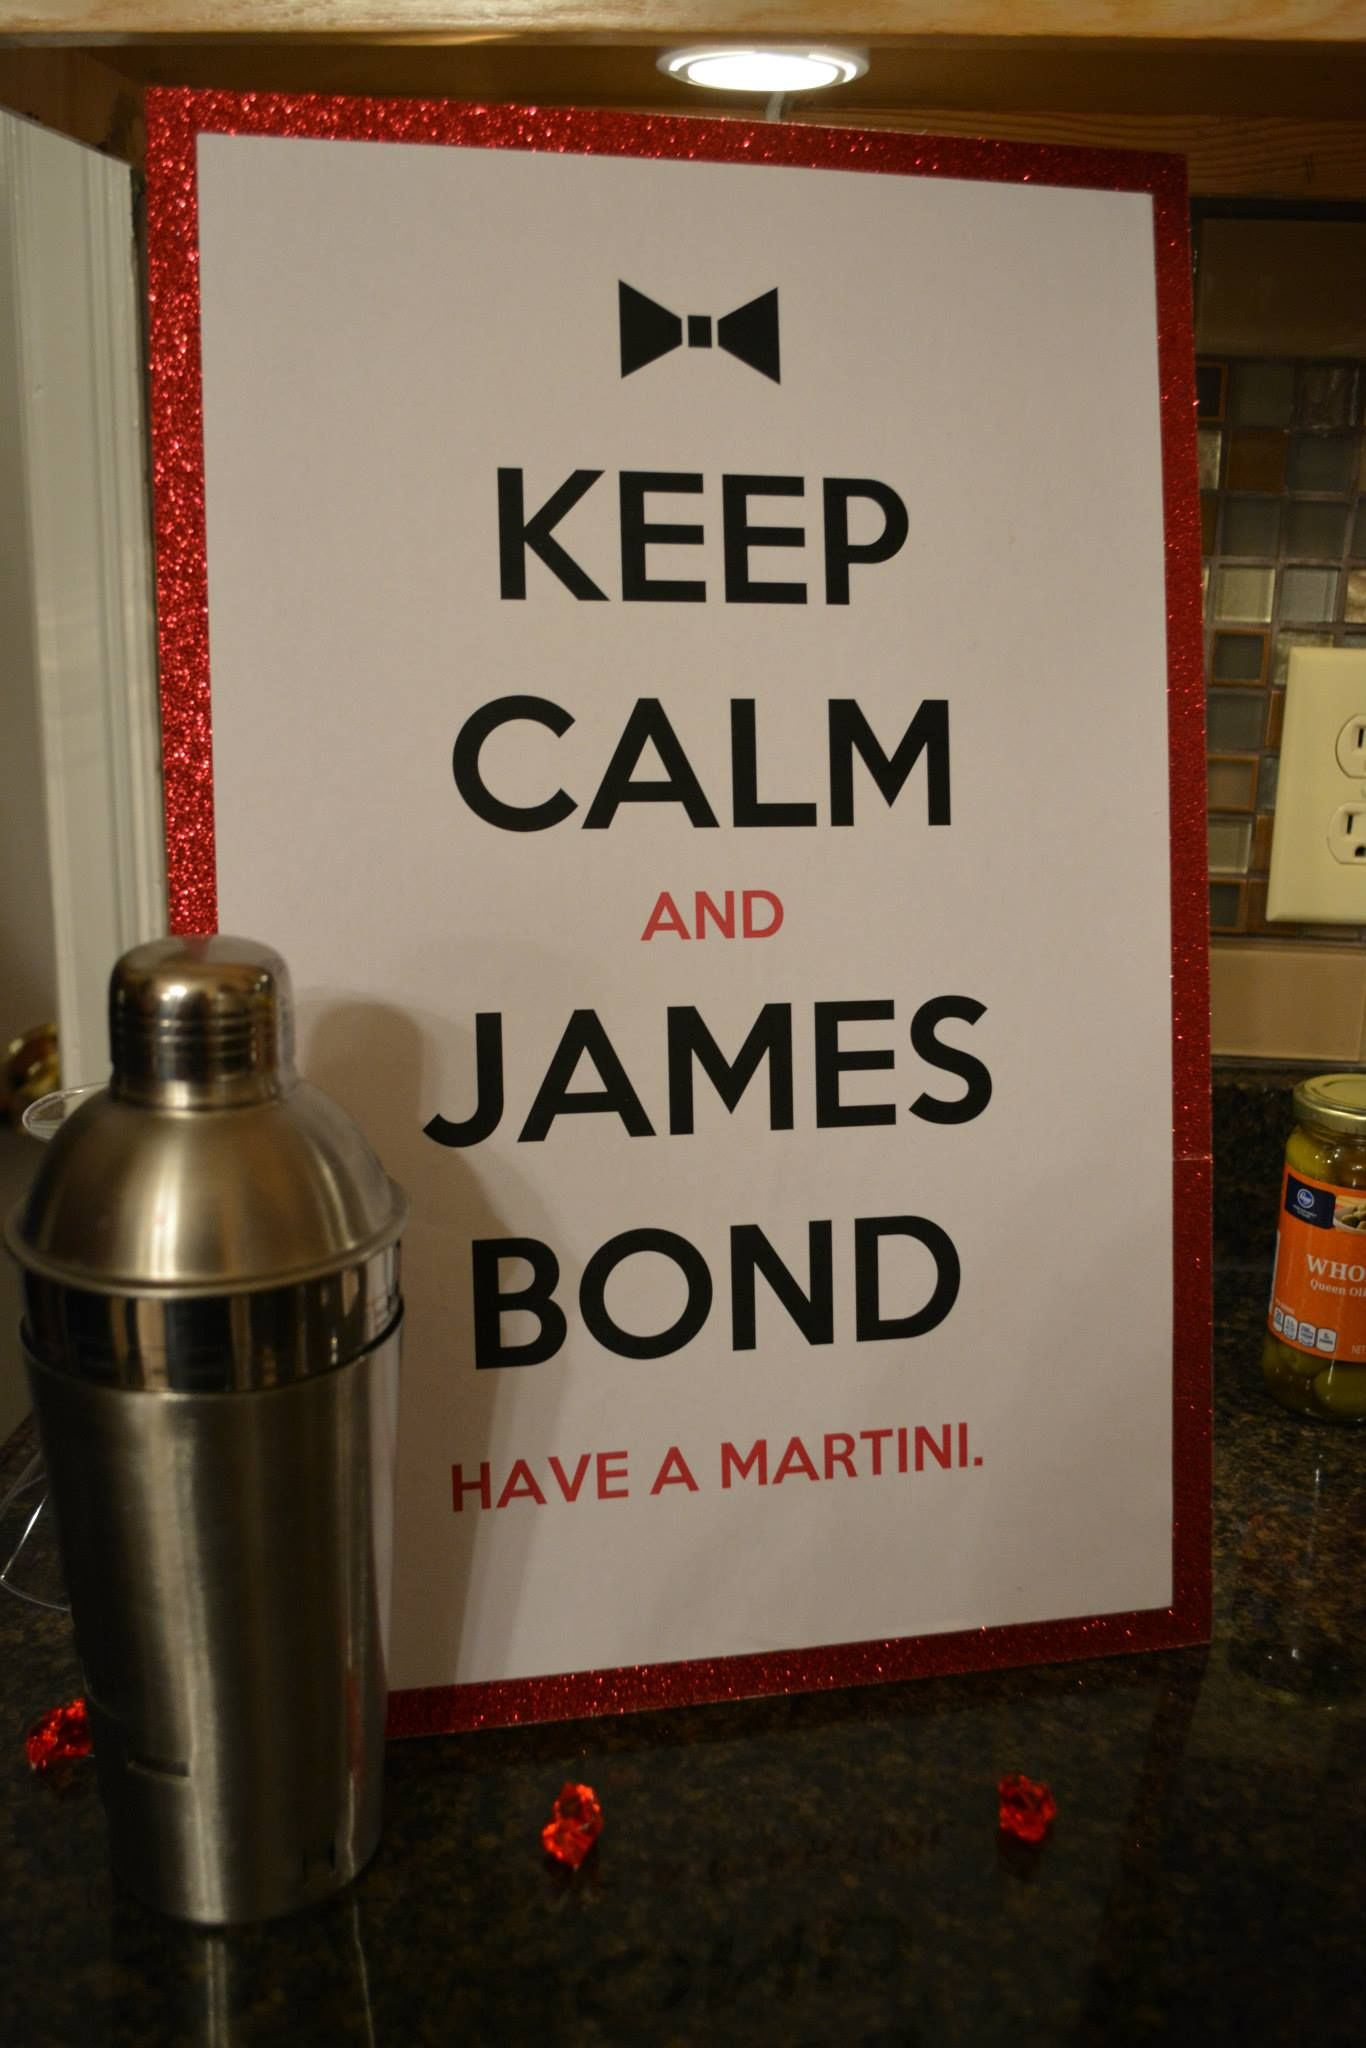 007 james bond themed birthday party keep calm and james bond james bond 60th birthday party. Black Bedroom Furniture Sets. Home Design Ideas